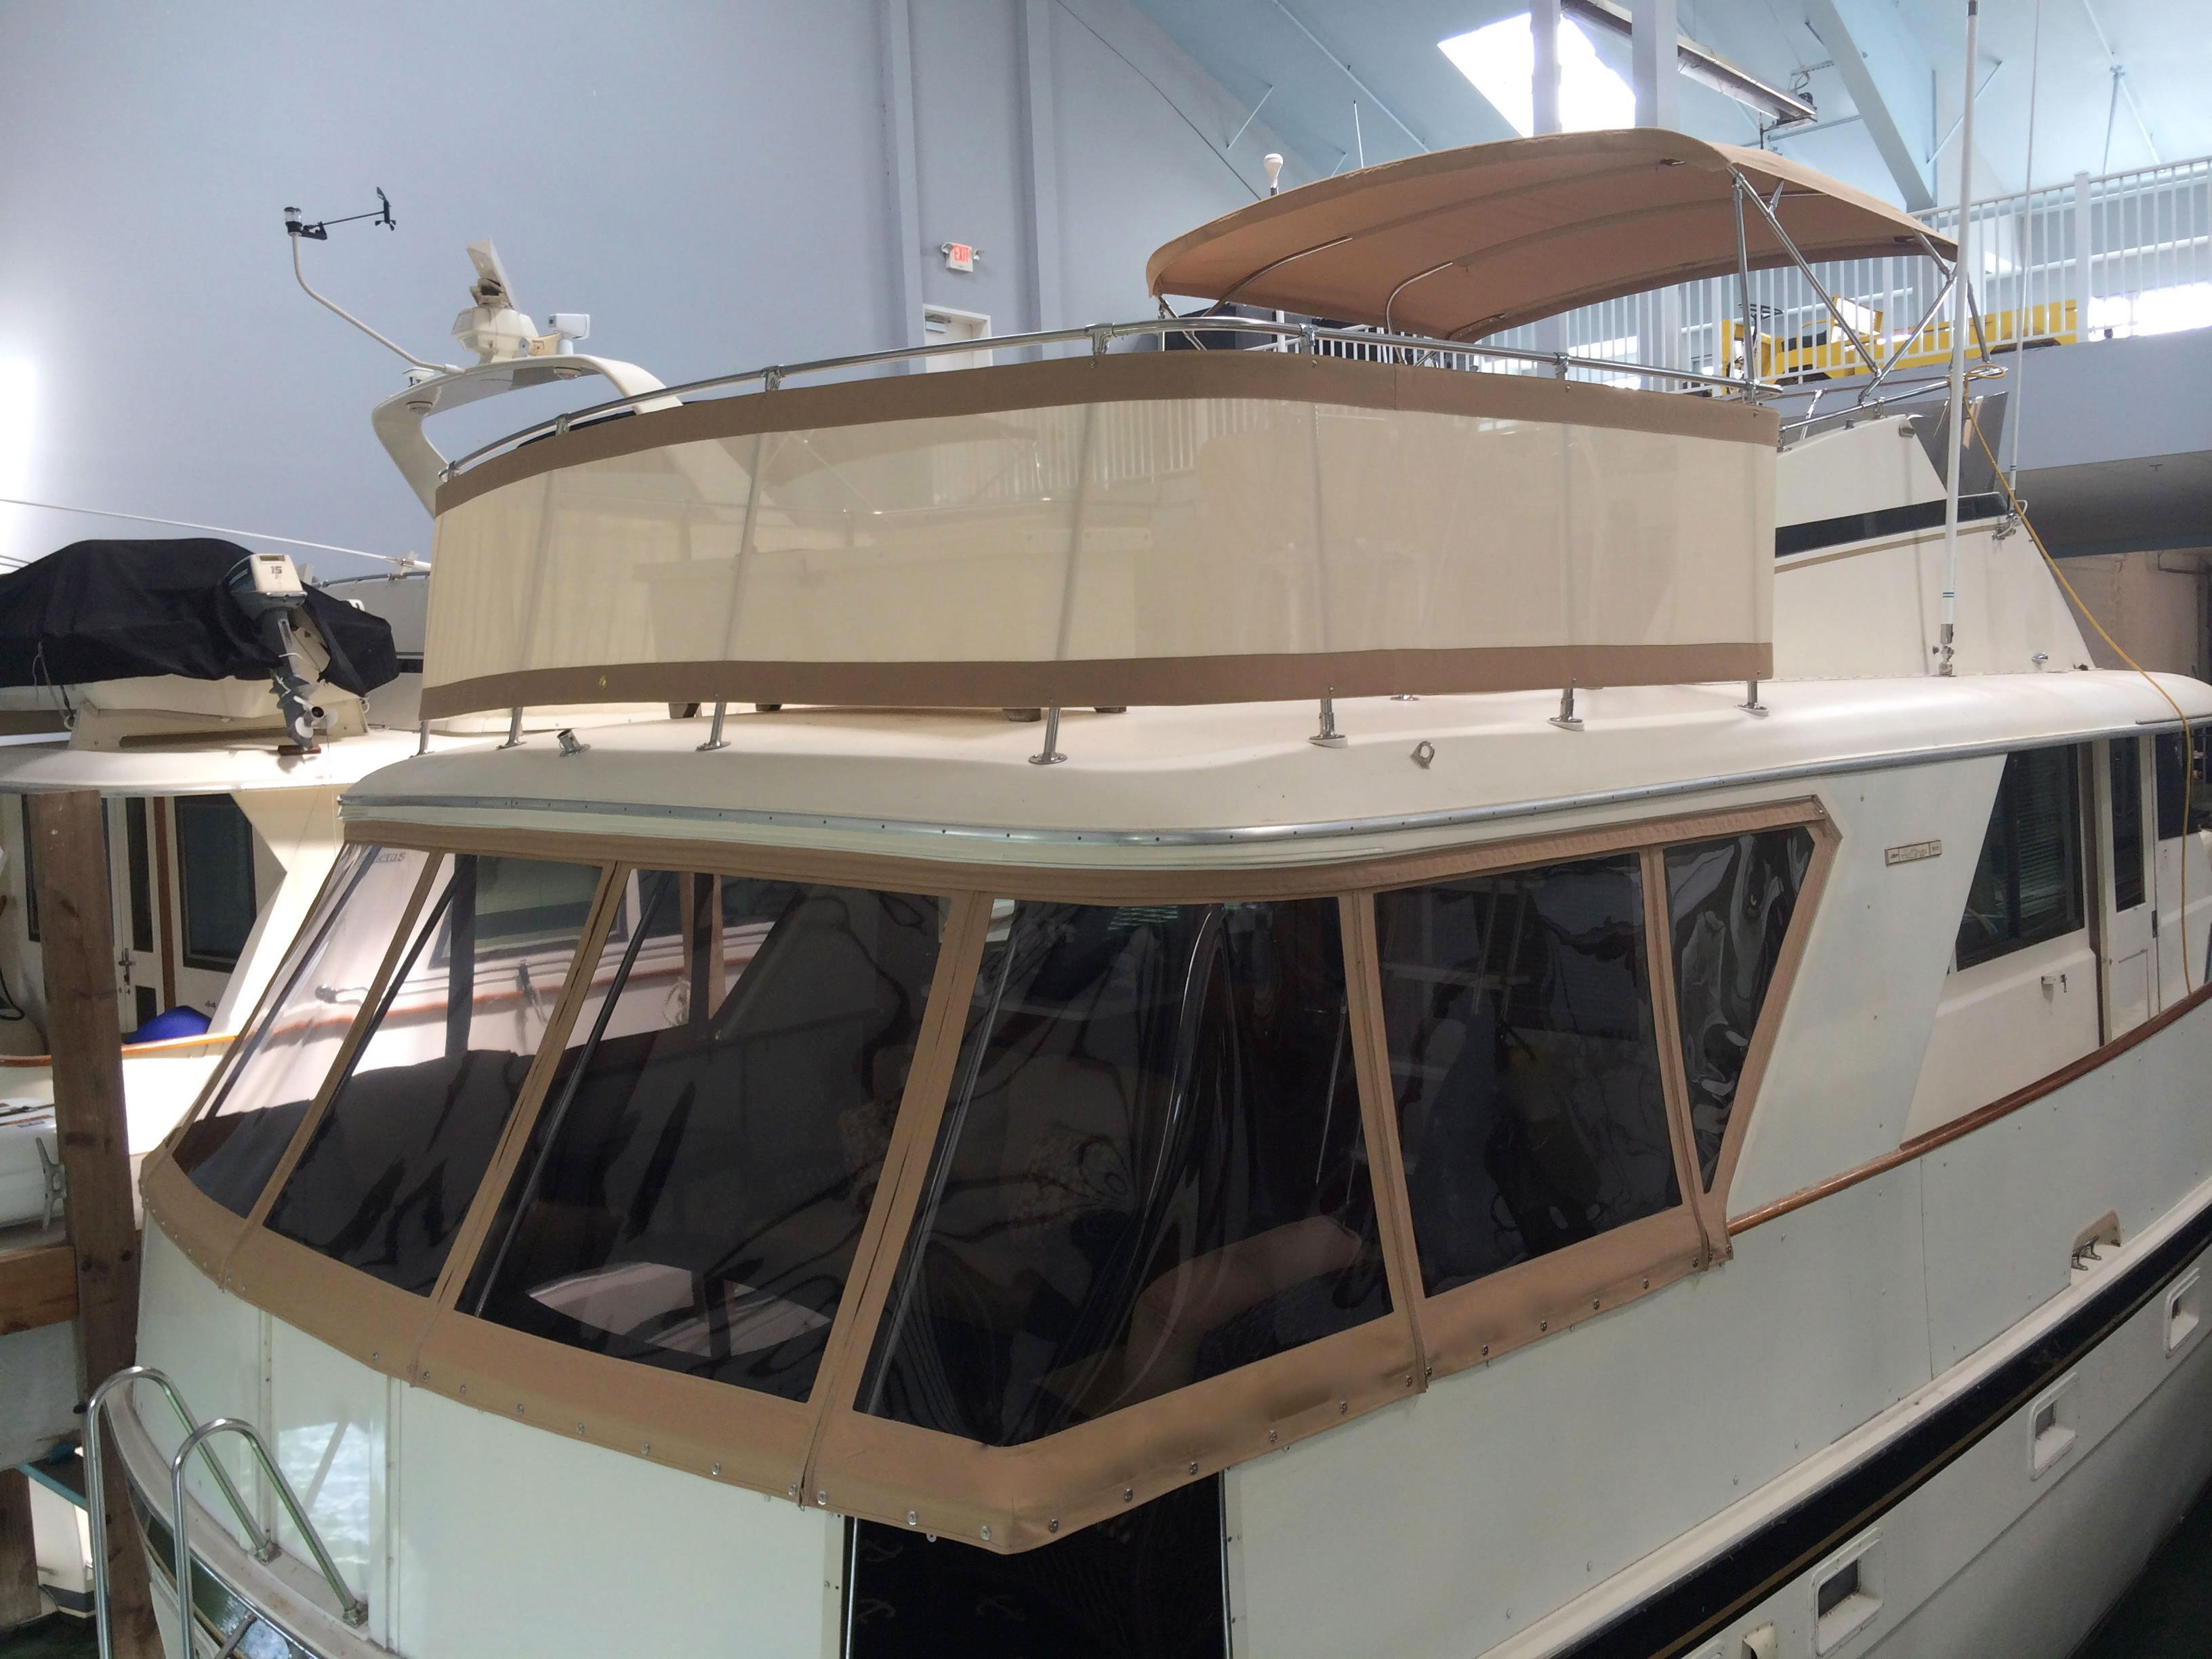 2015 Award of Excellence - Tops & Enclosures (53' Hatteras)